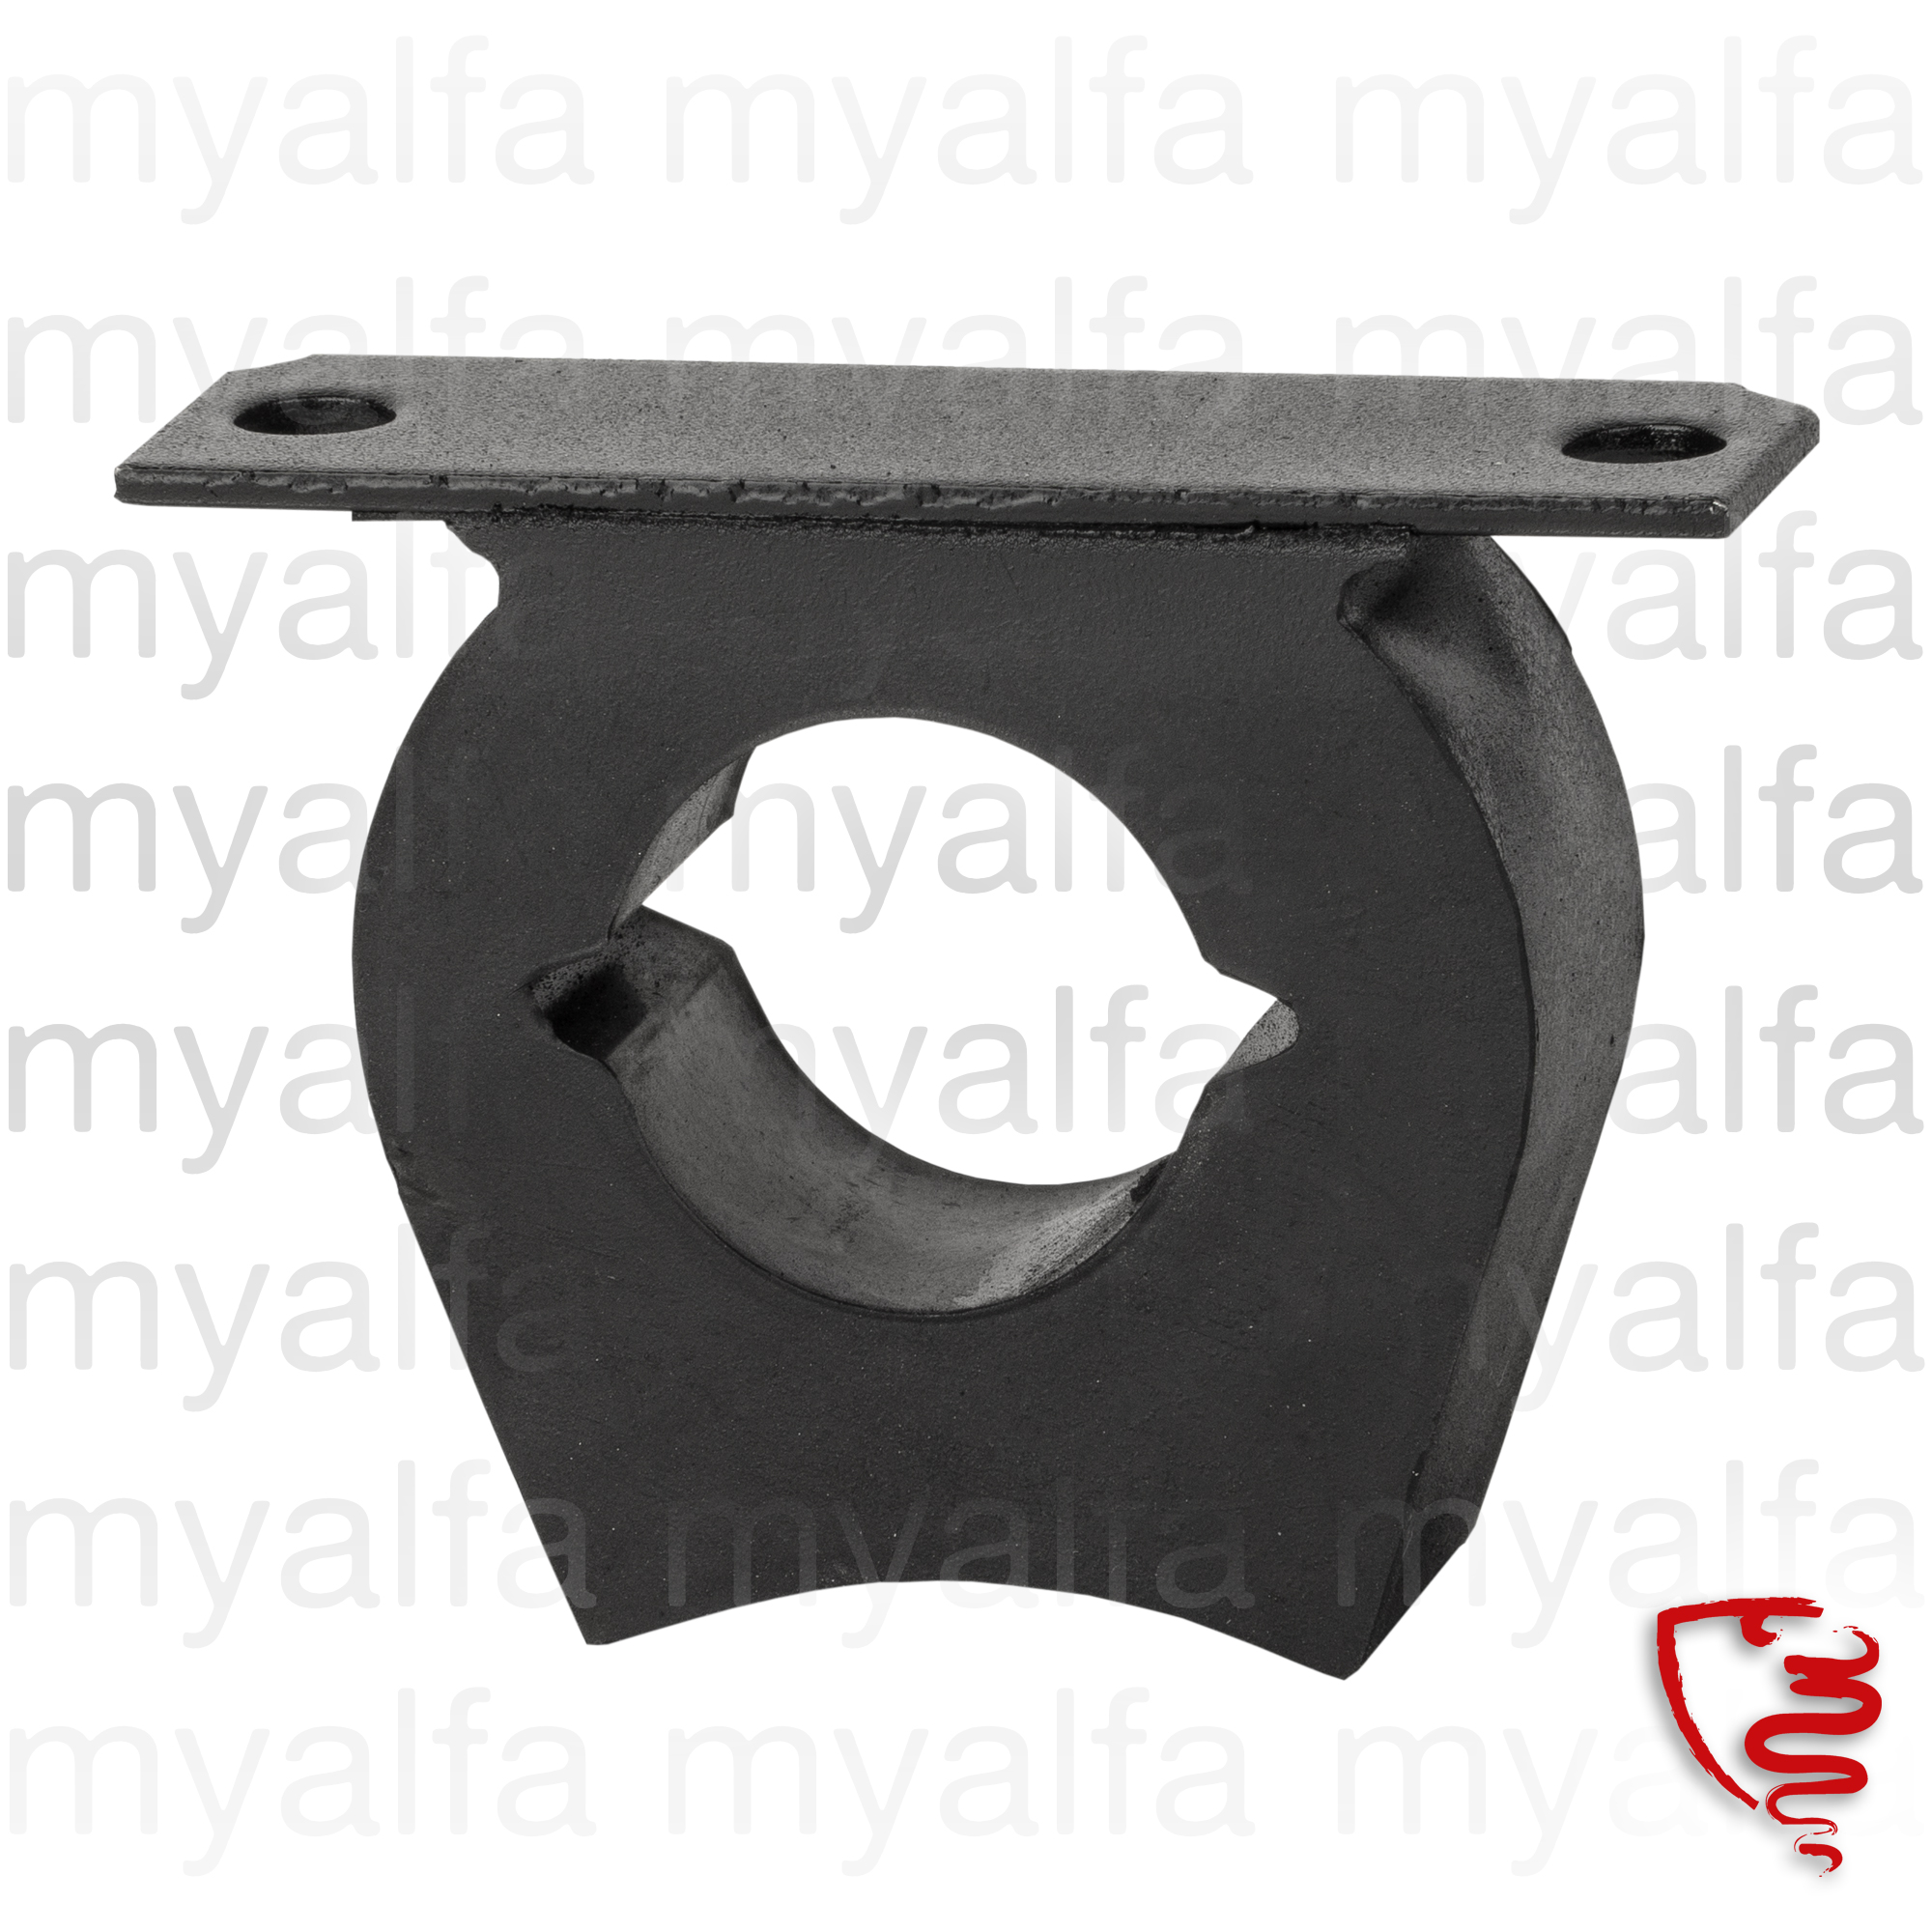 Stop rear suspension for 105/115, Chassis Mount, Rear suspension, Trailing Arms/bushings